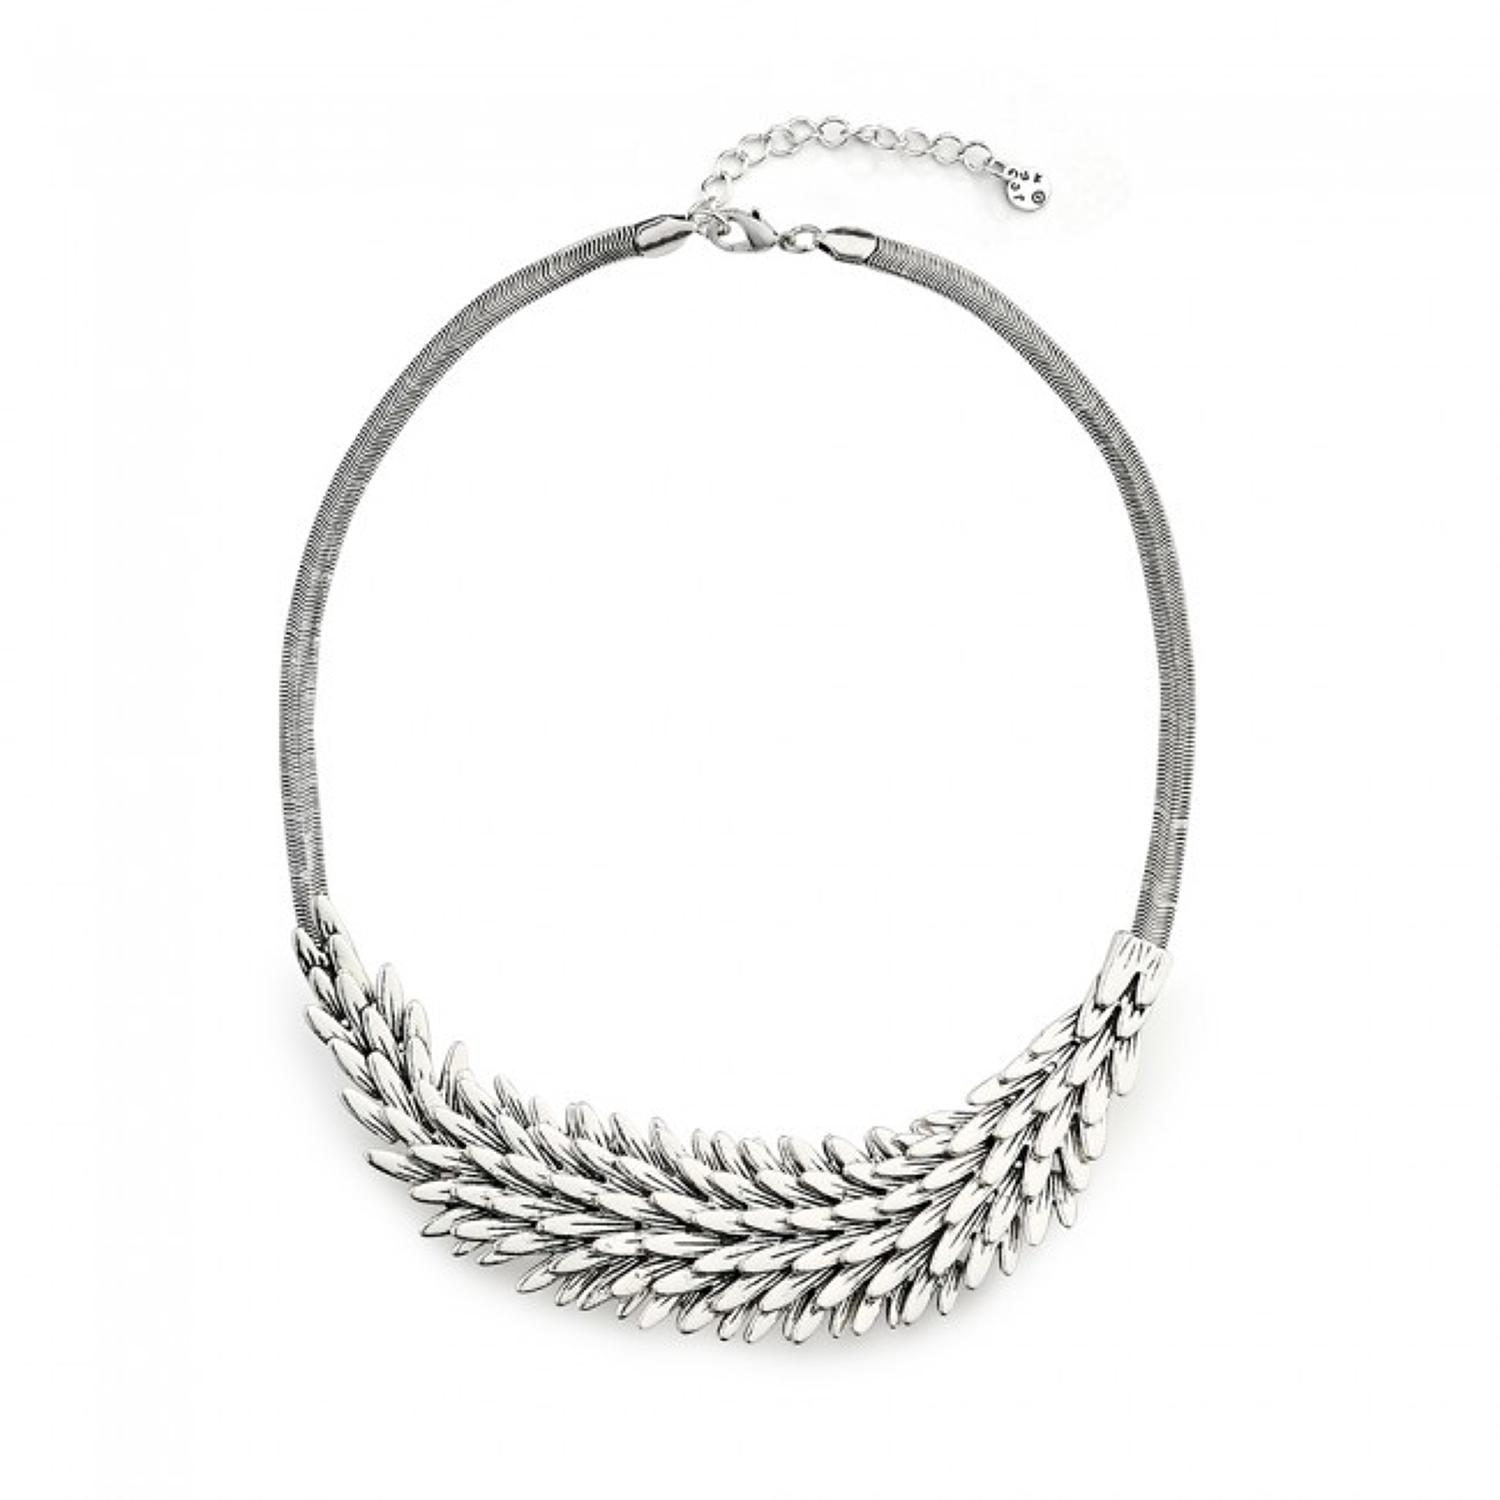 Oxidised Silver Plated Hedghog Necklace Set